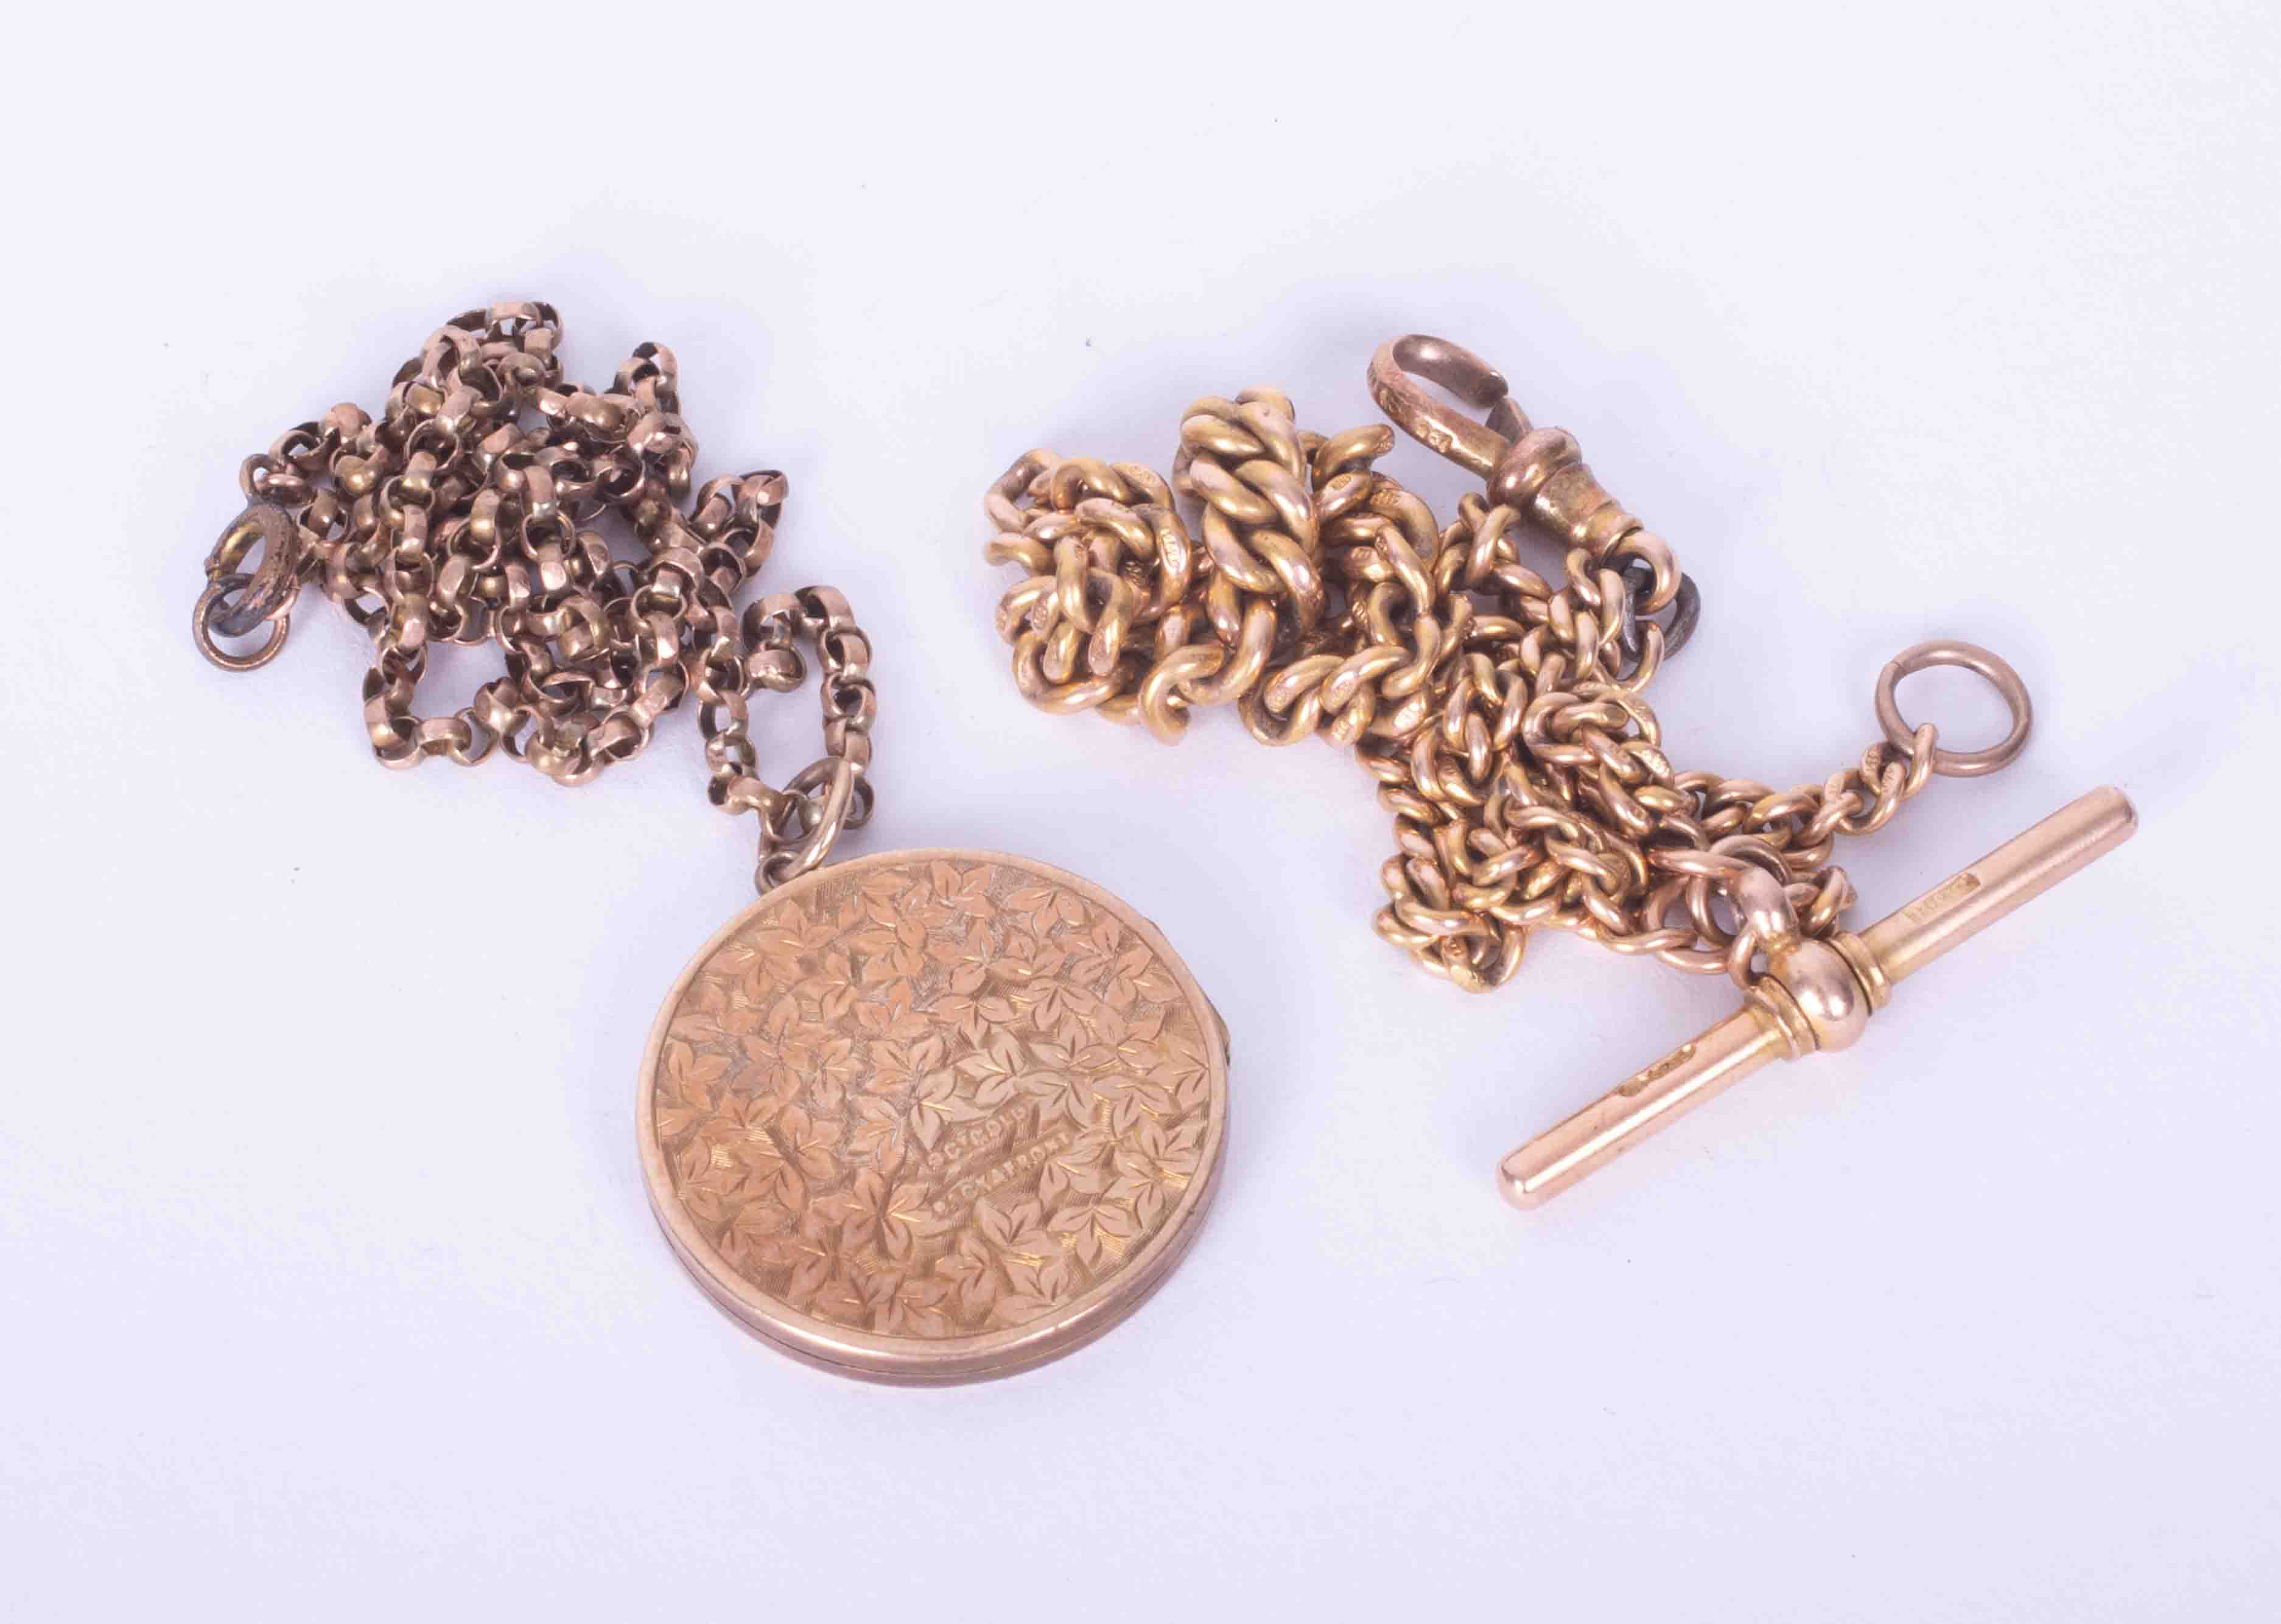 A 9ct yellow gold open link curb chain & 9ct yellow gold leaf design locket (weight 8.7g) and a 15ct